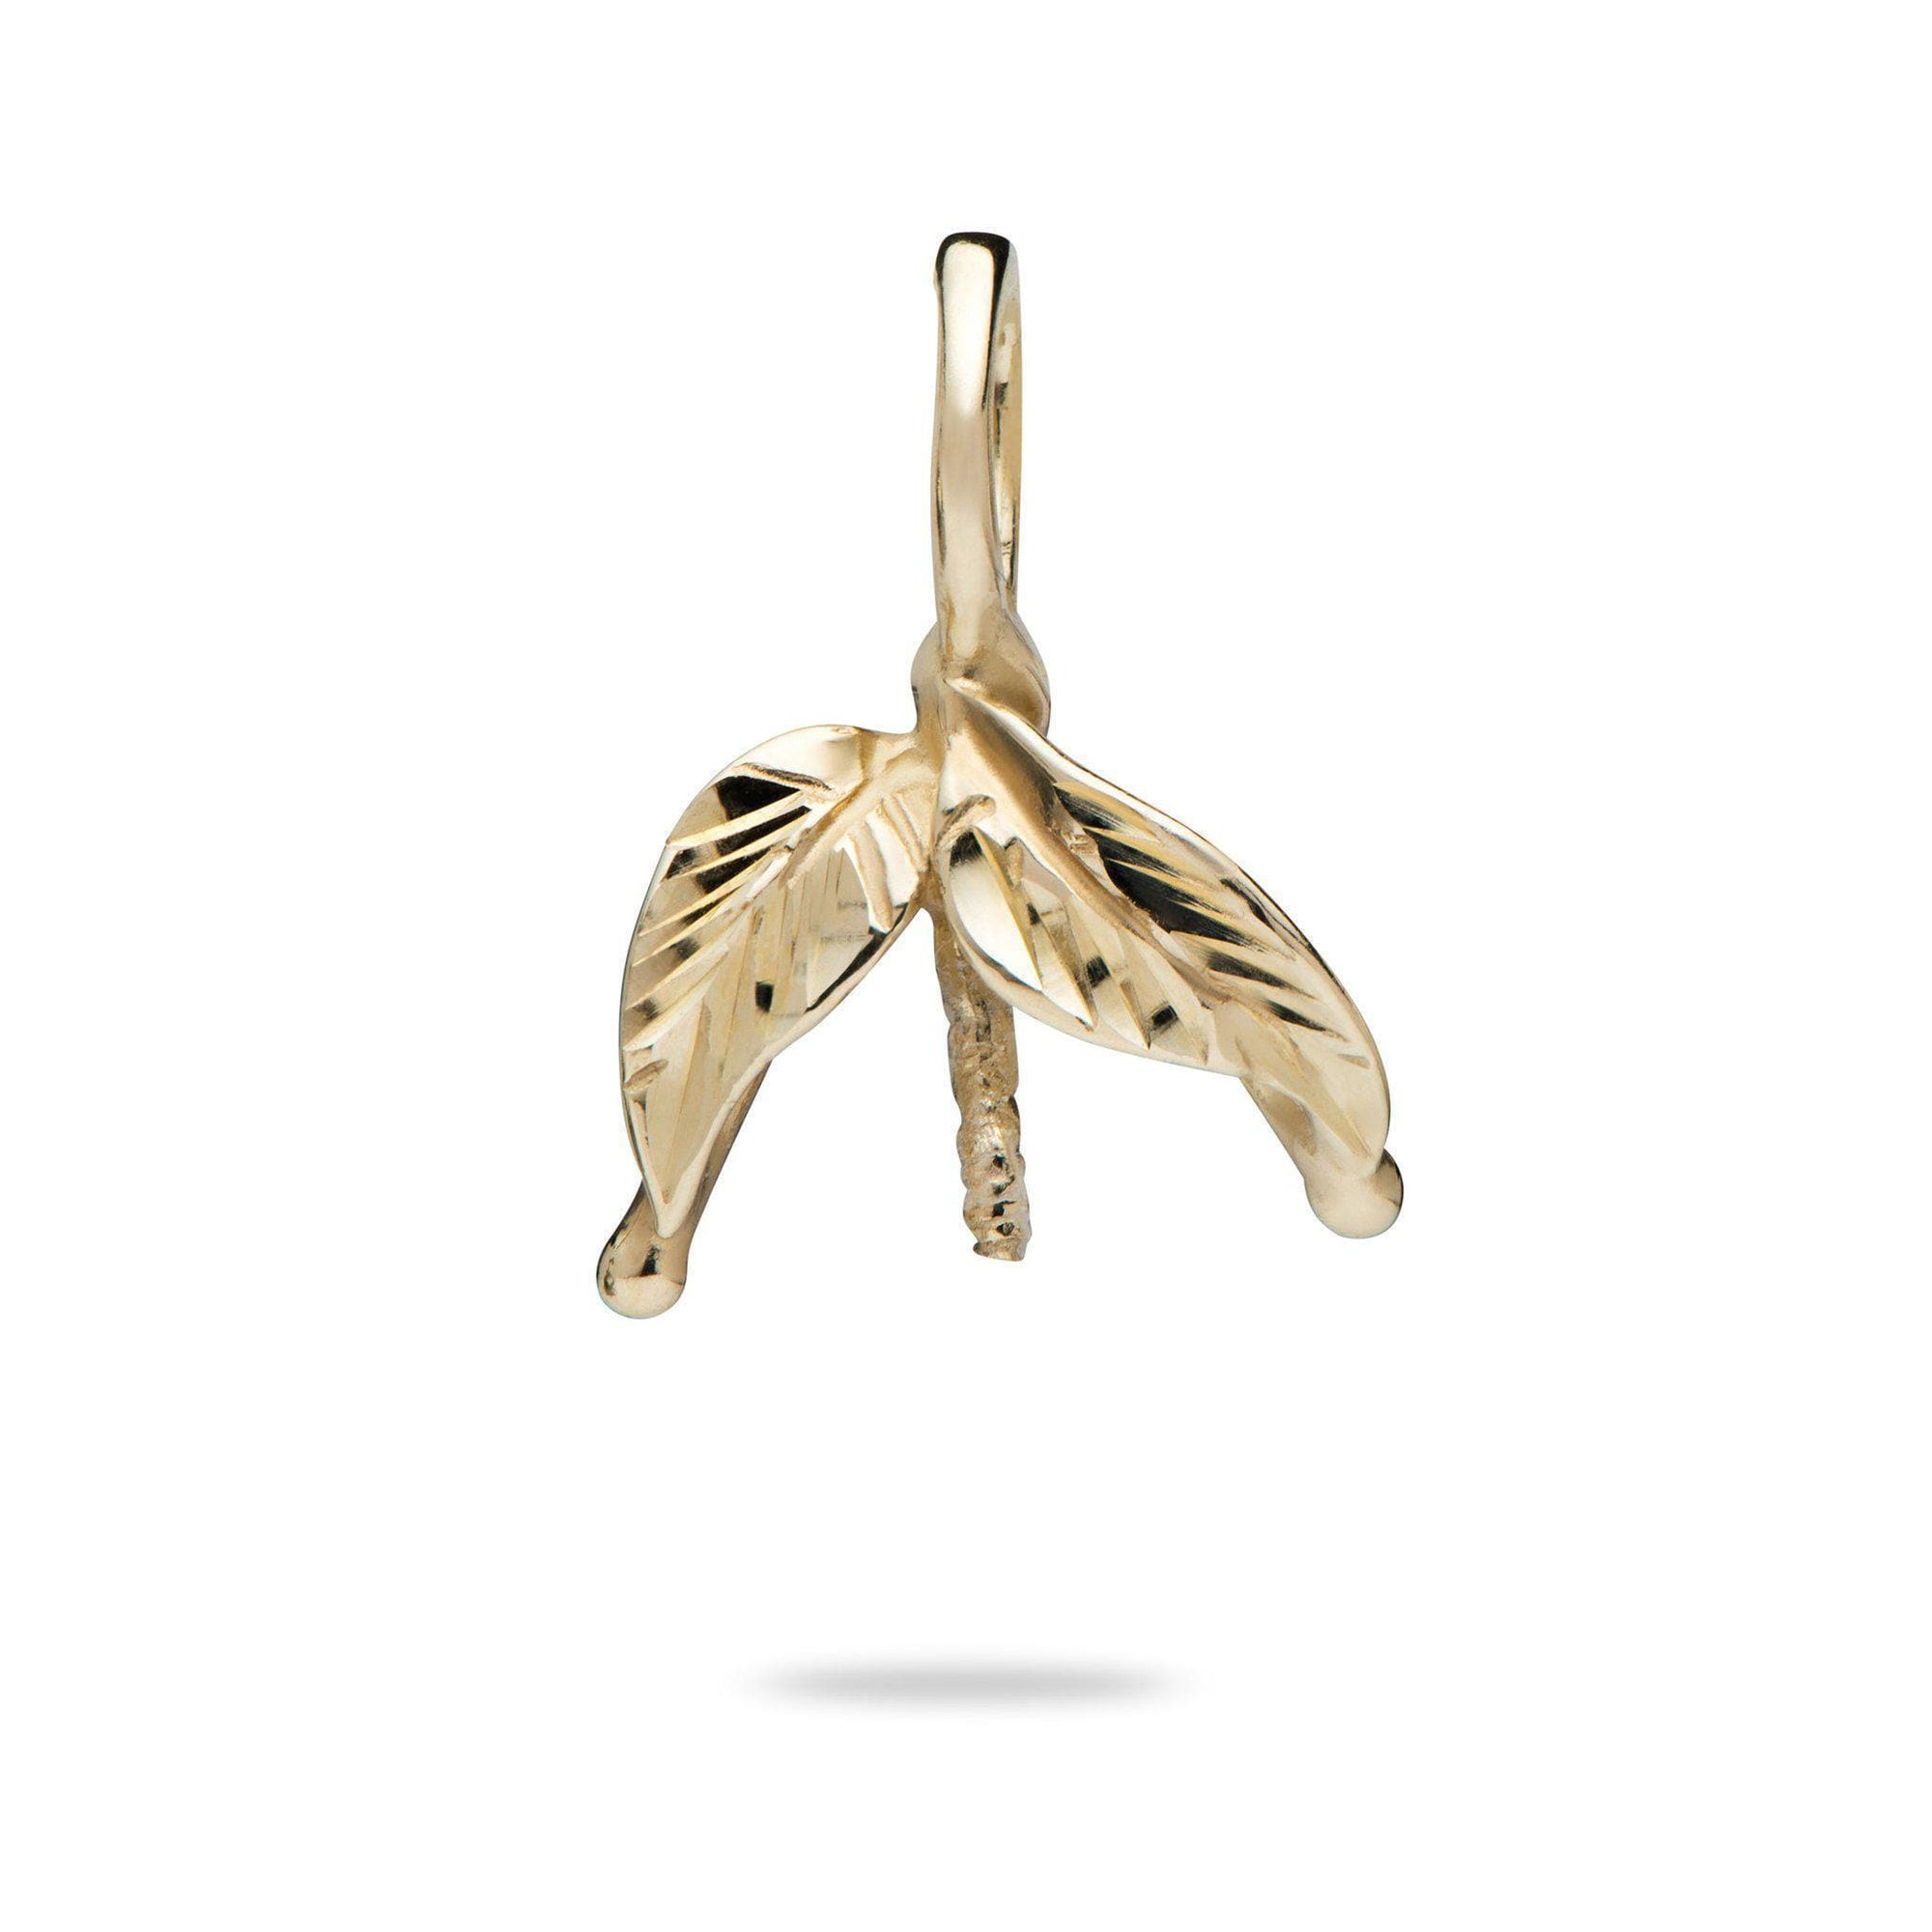 Maile Leaves Pendant Mounting in 14K Yellow Gold 076-00111